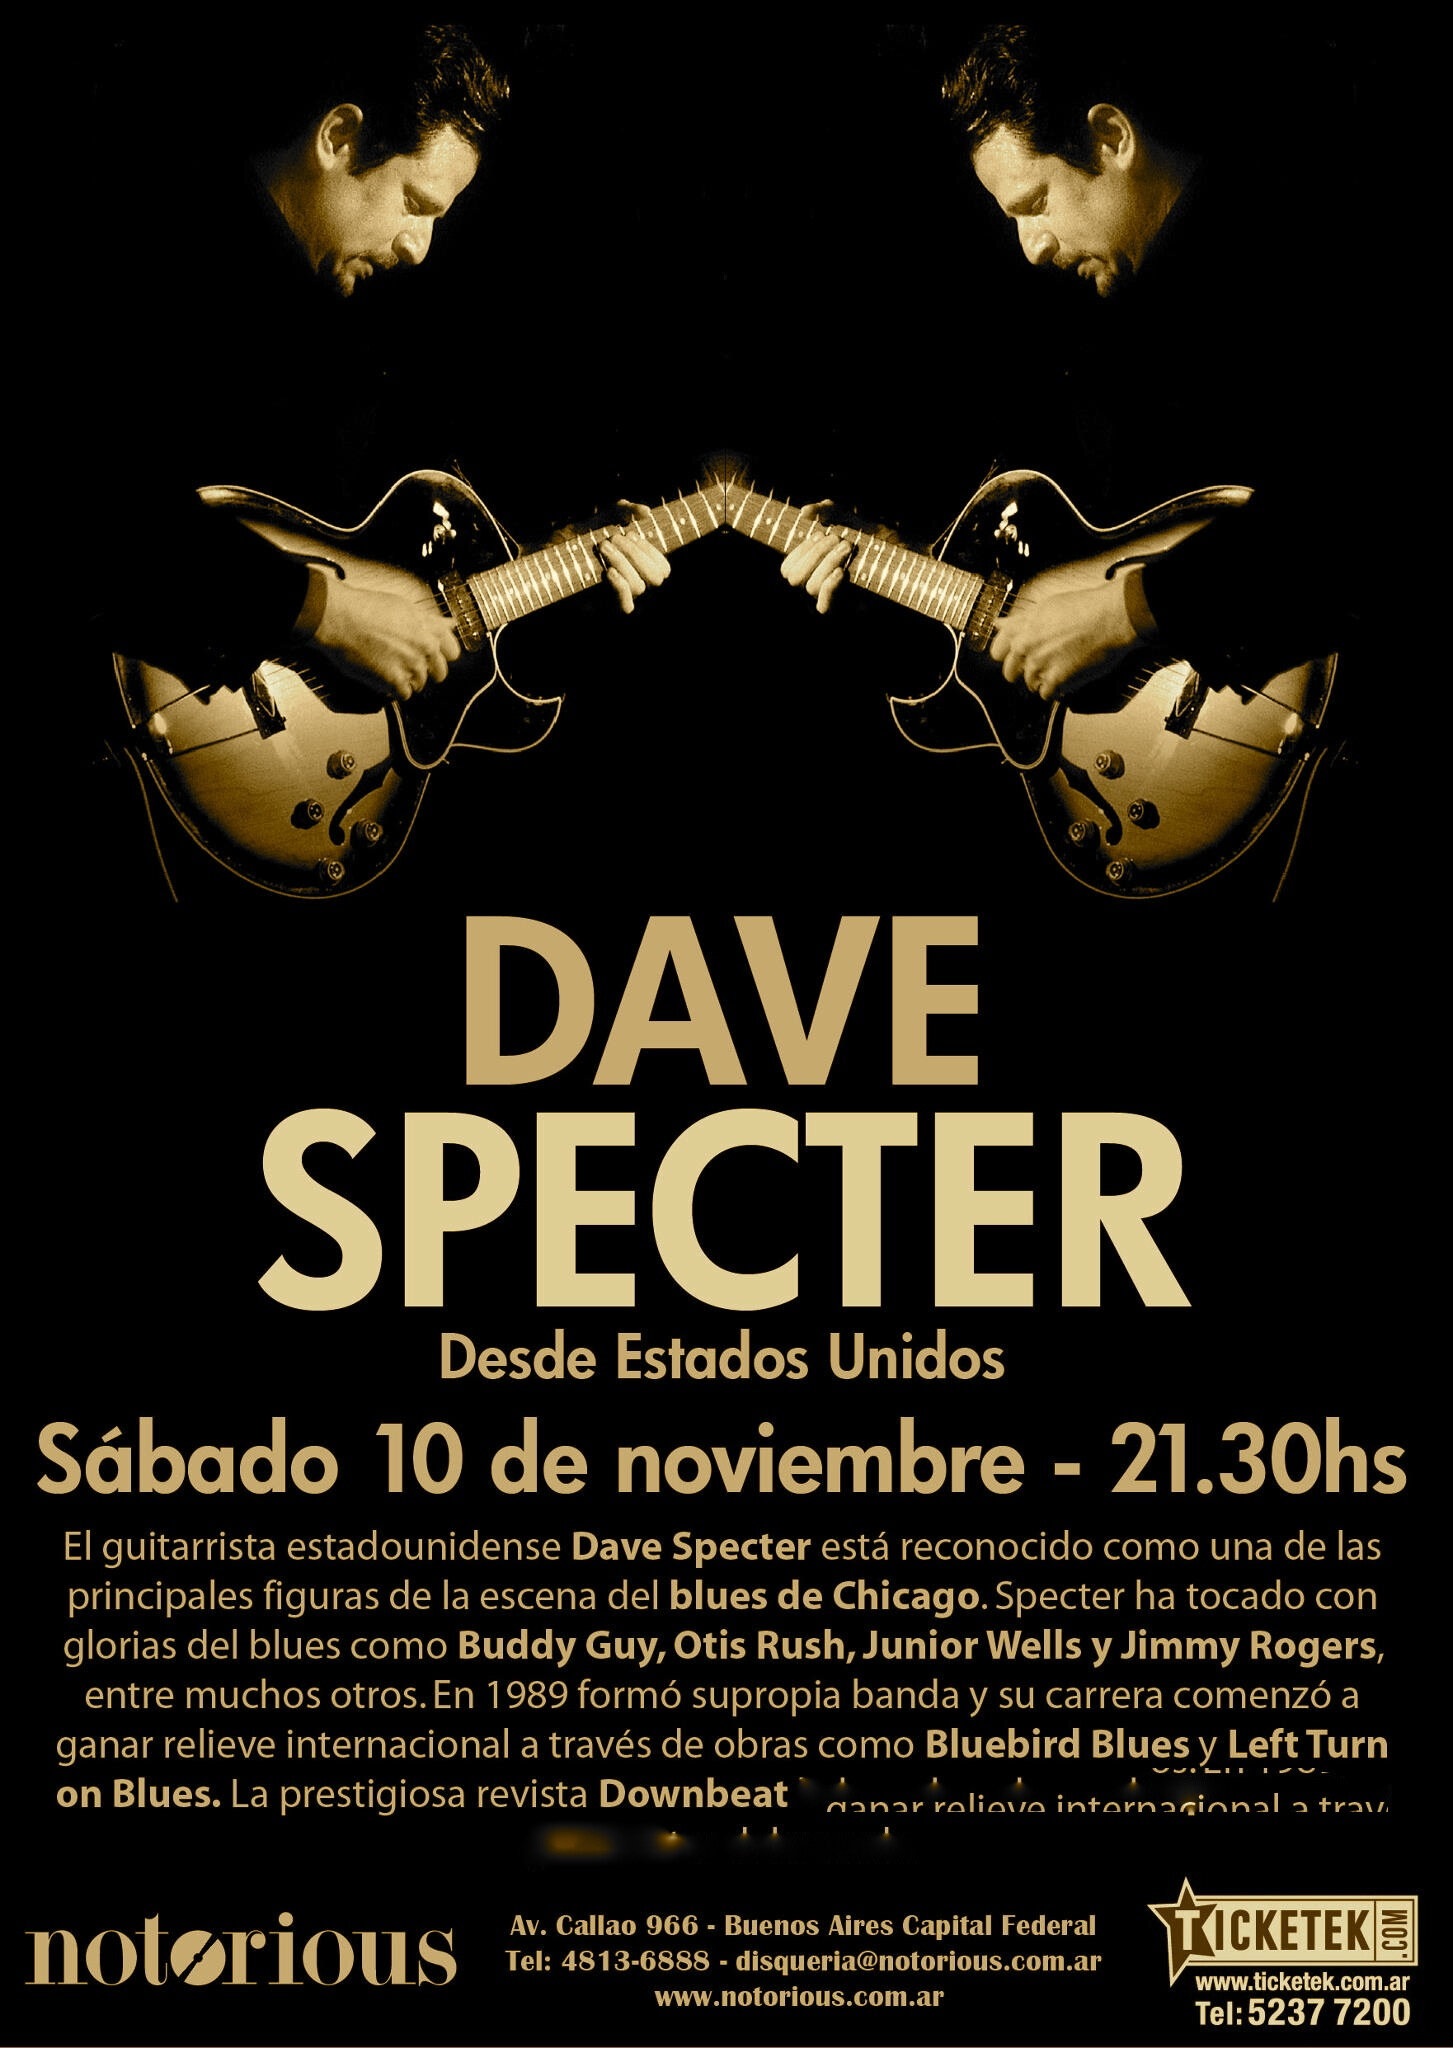 Buenos Aires poster.jpg